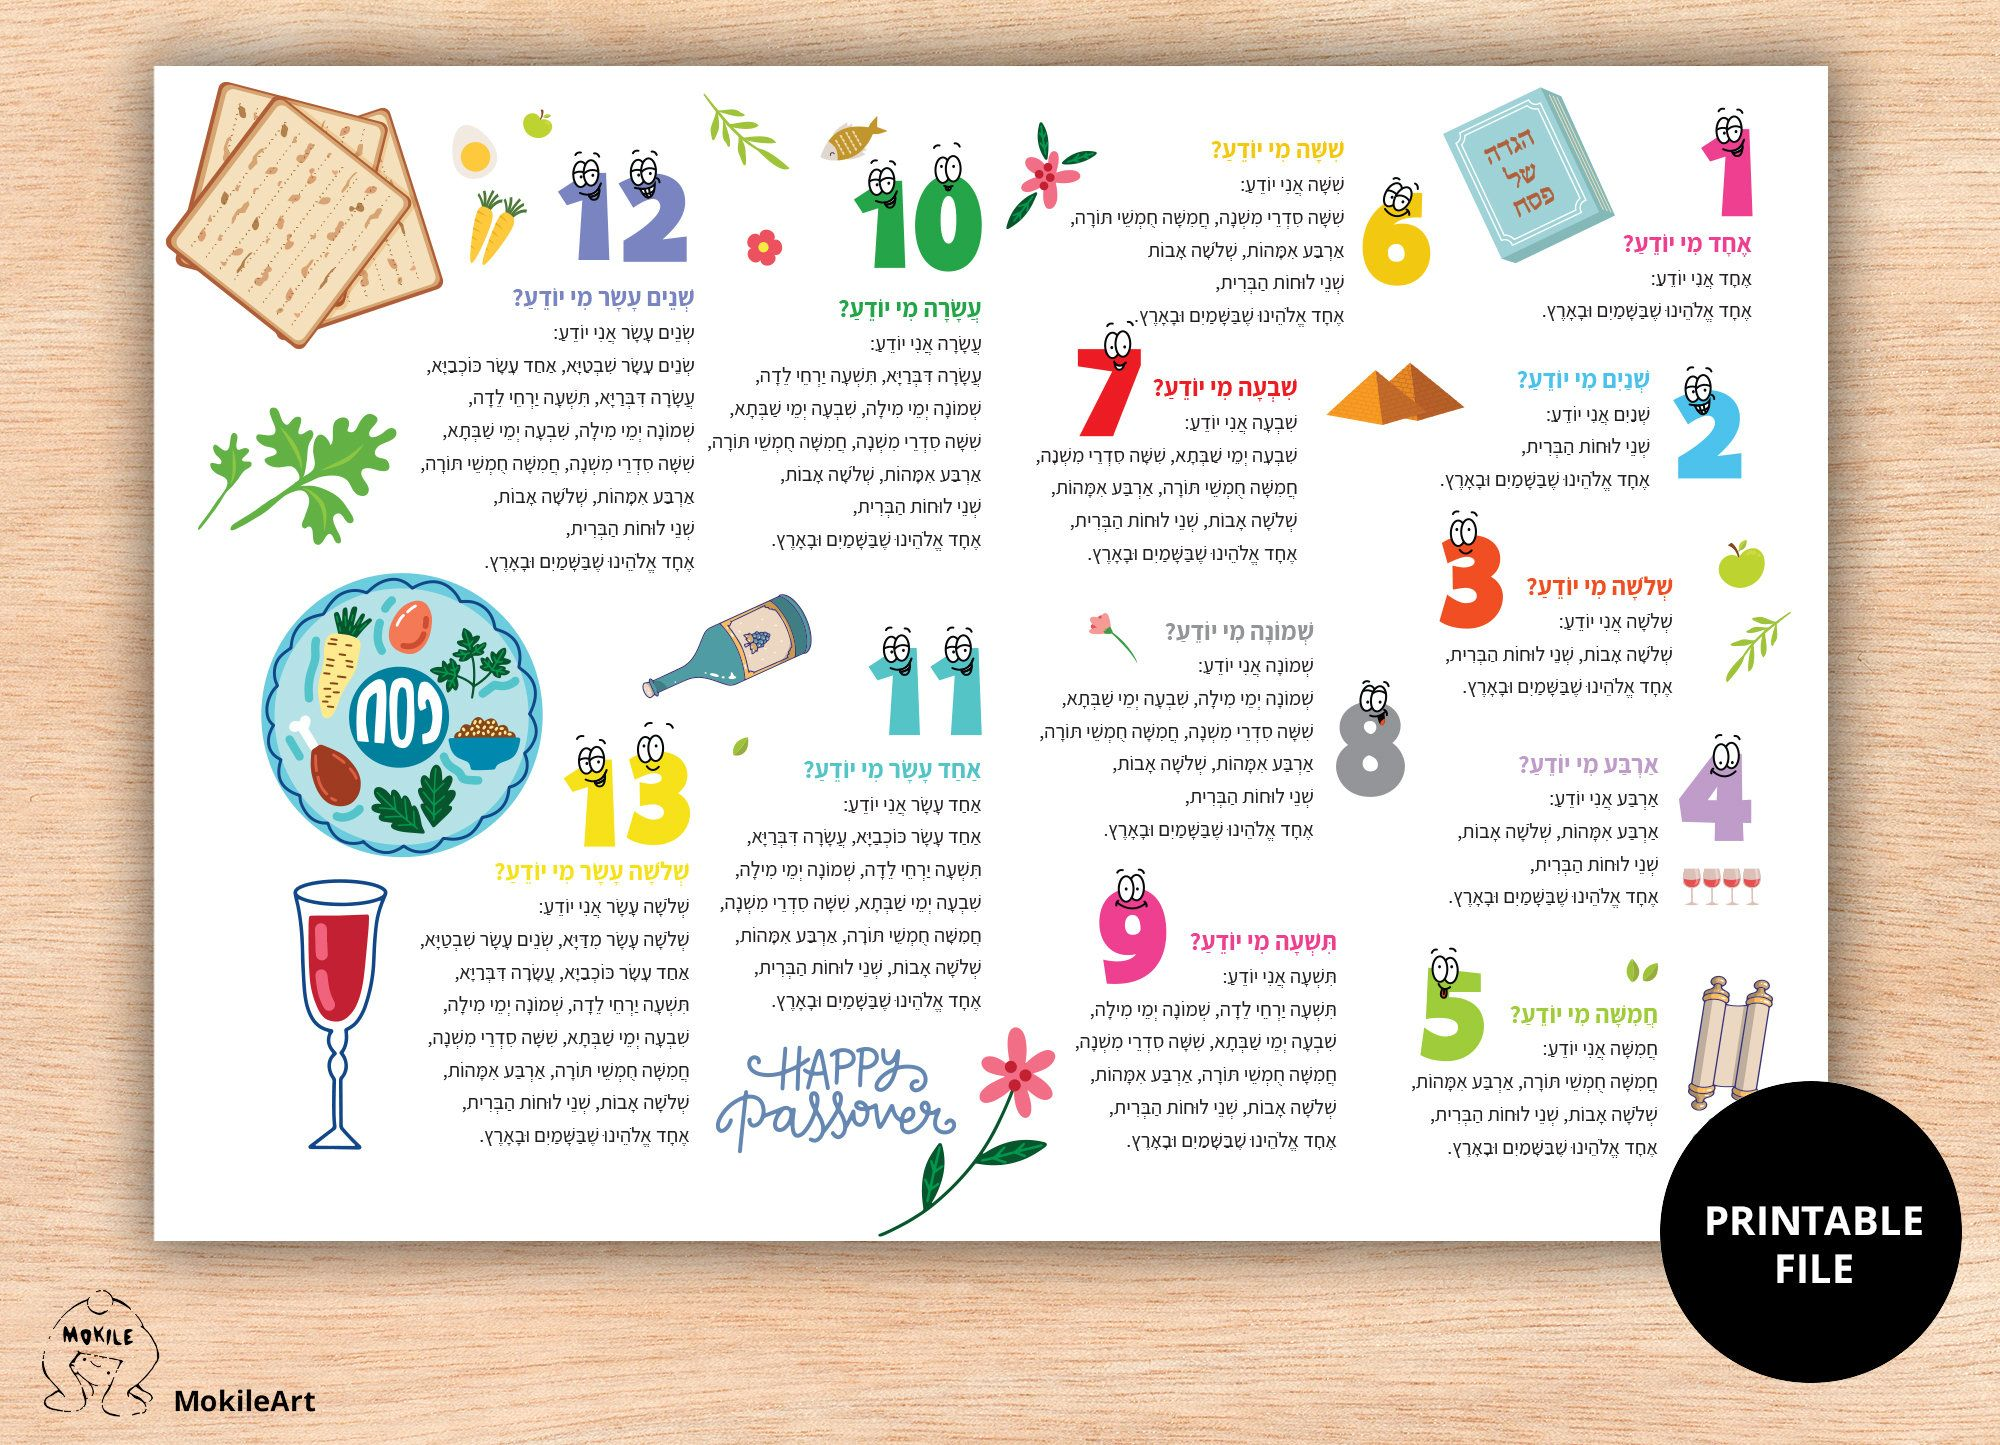 Passover Passover Printable Passover Seder Plate Echad Mi Yodea Pesach Song פסח Passover Printable A Seder P Passover Printables Passover Seder Plate Pesach [ 1445 x 2000 Pixel ]